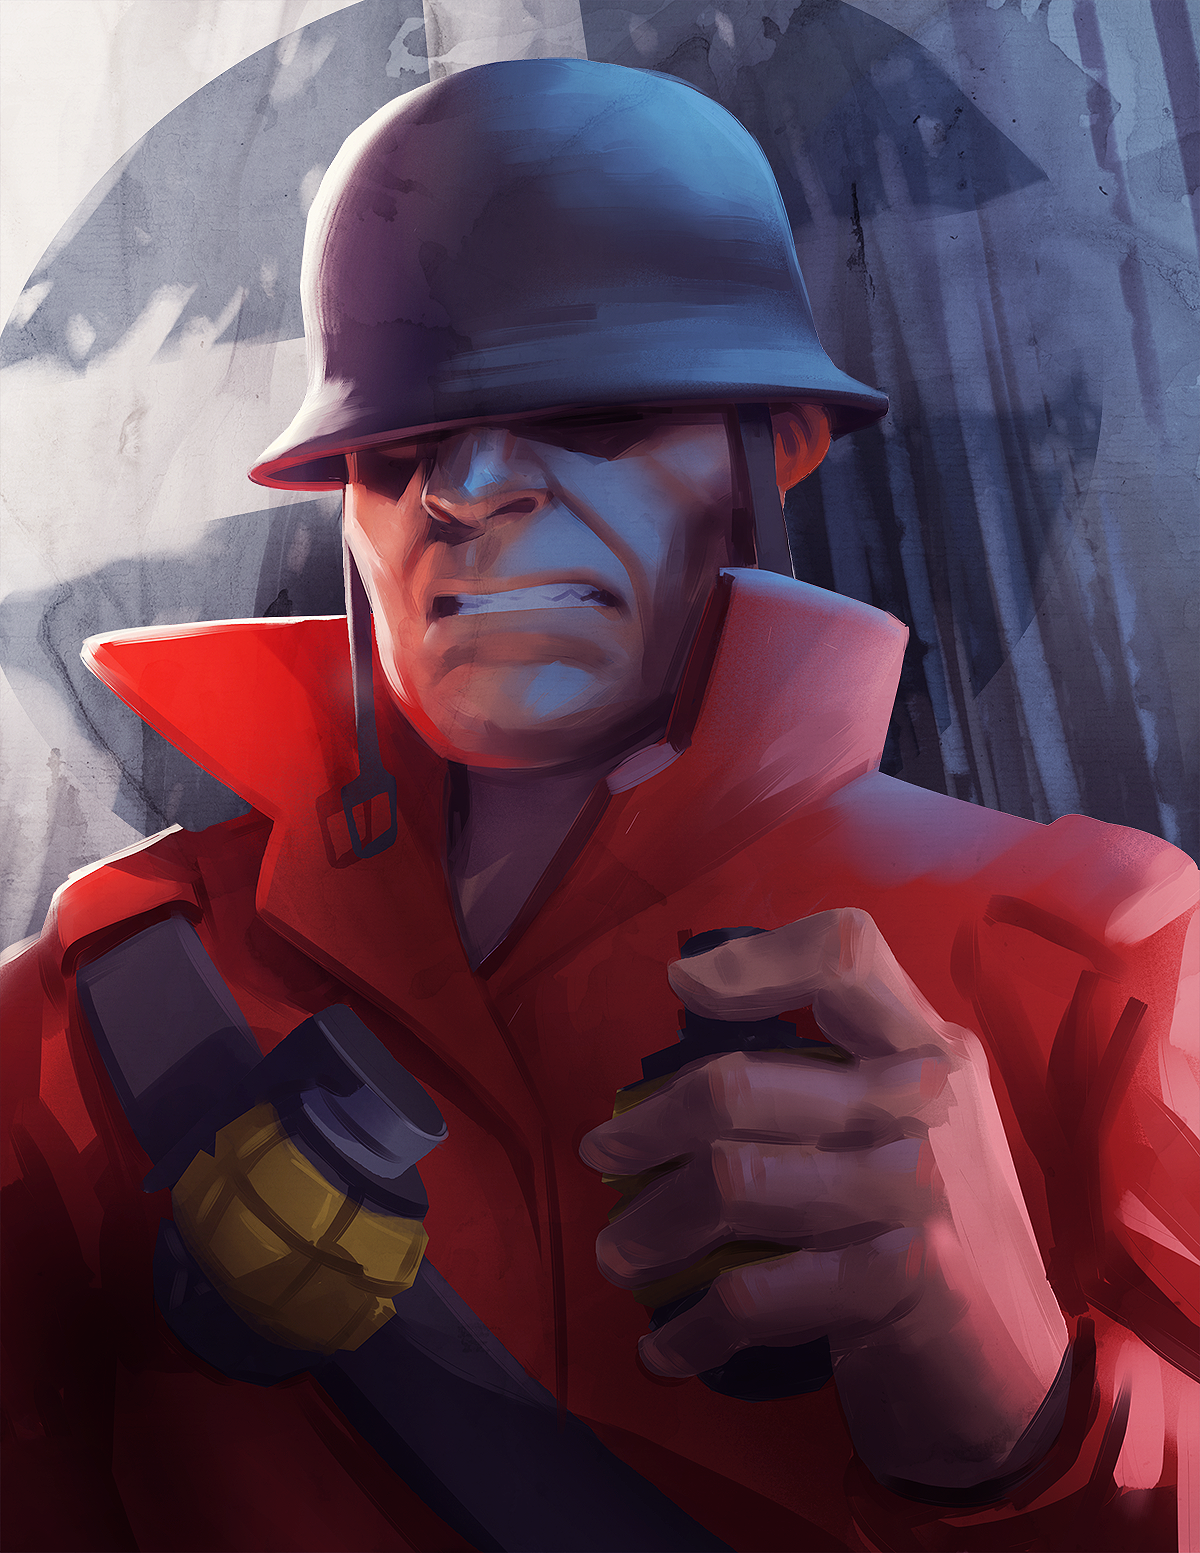 08_02_2014_soldier_by_makkon-d7tgs78.png